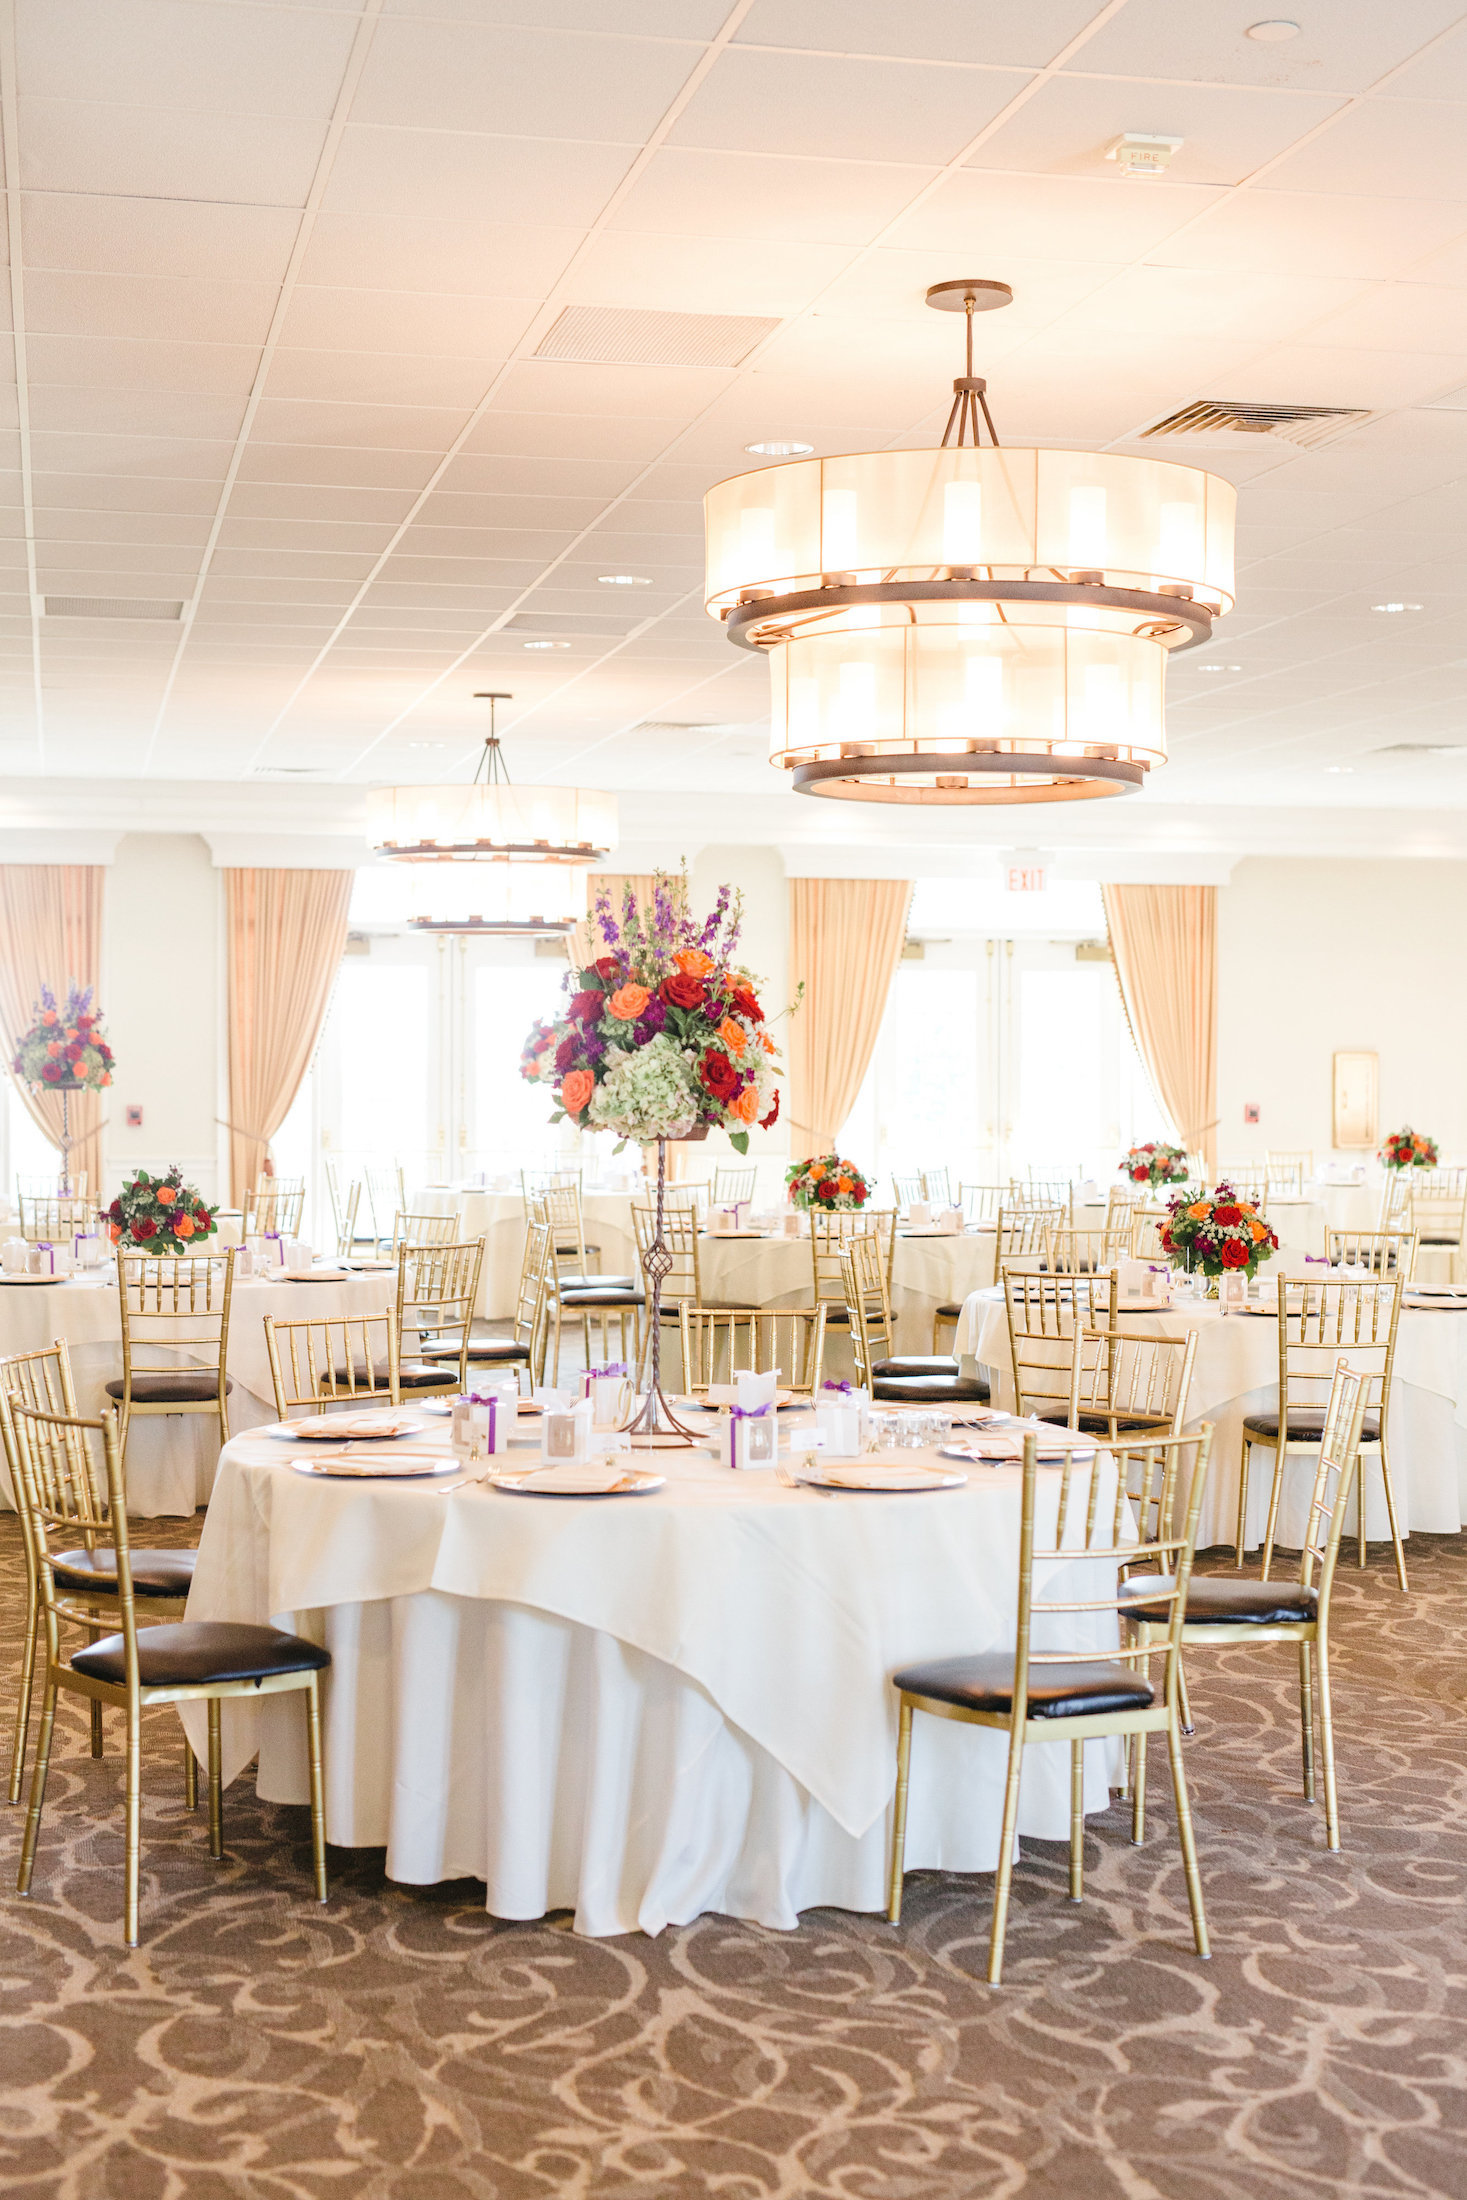 Top wedding coordinators in Ashburn, VA